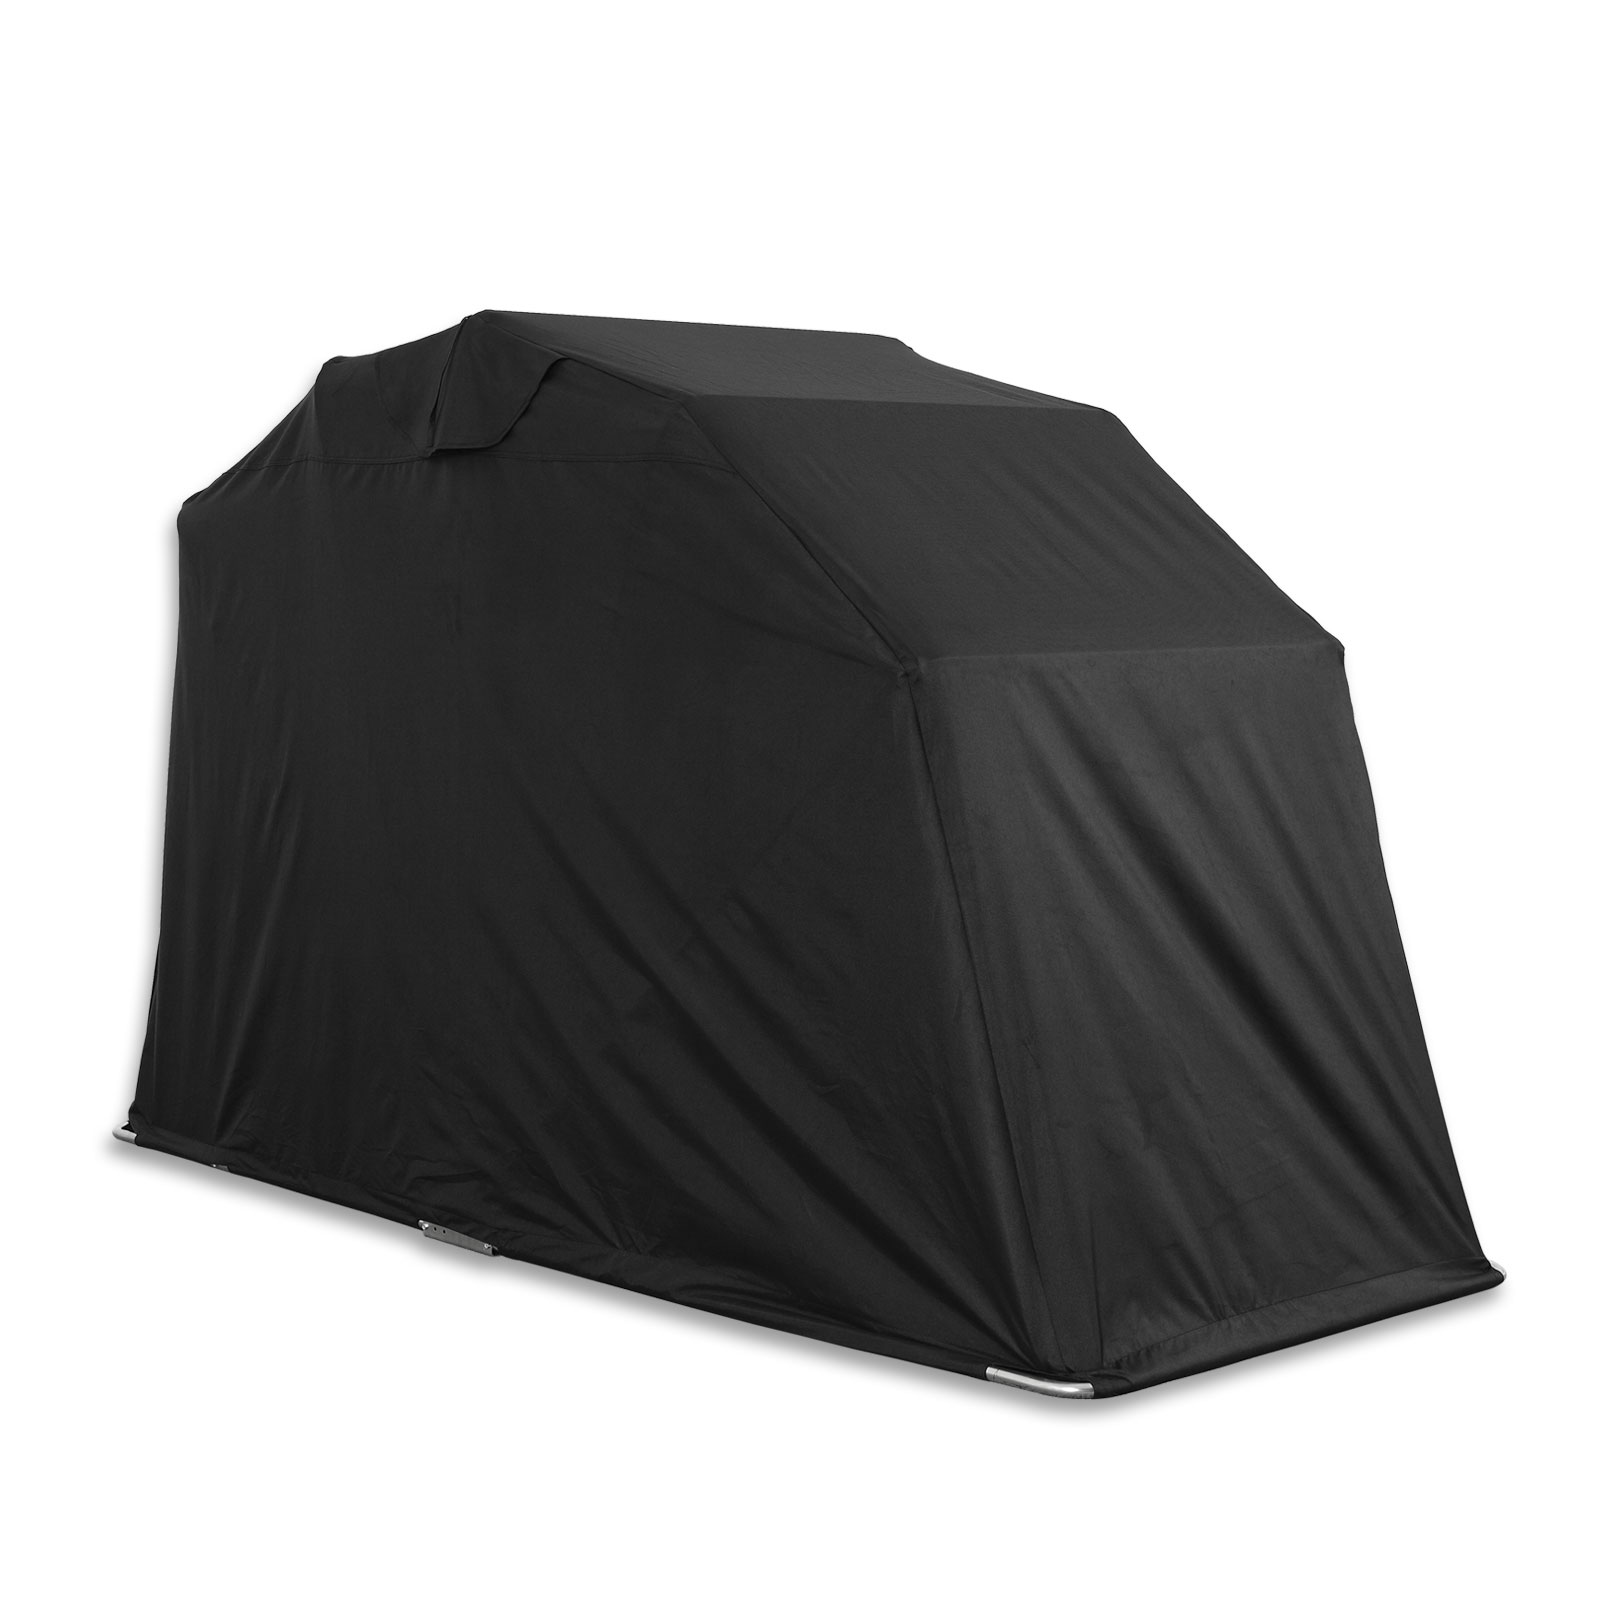 Portable Motorcycle Covers : Motorcycle bike tent shed outdoor cover folding garage